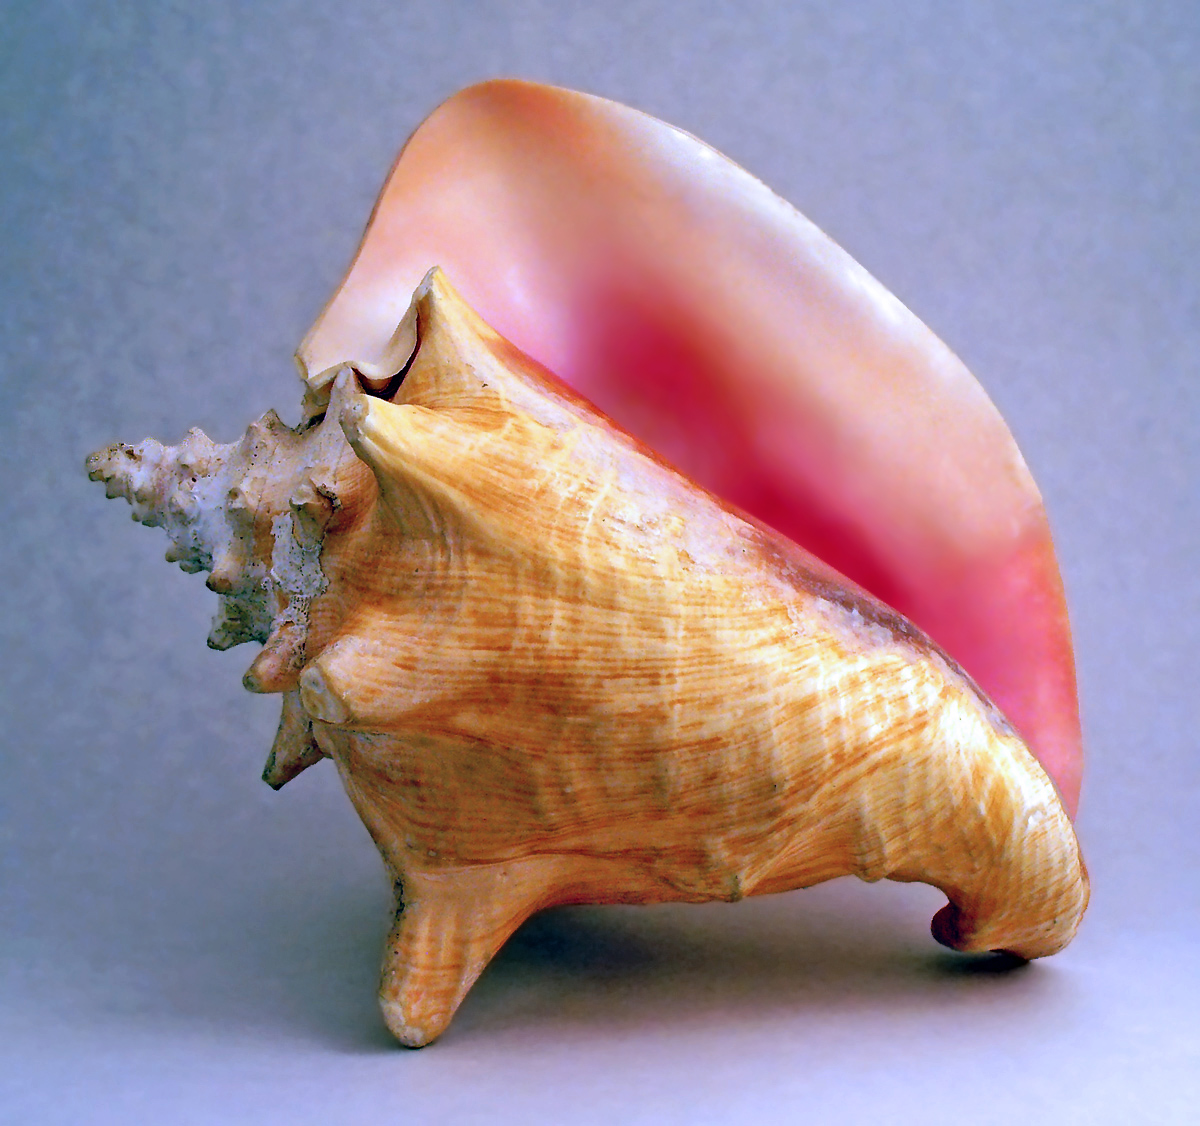 A conch shell. Scungilli in Italian.